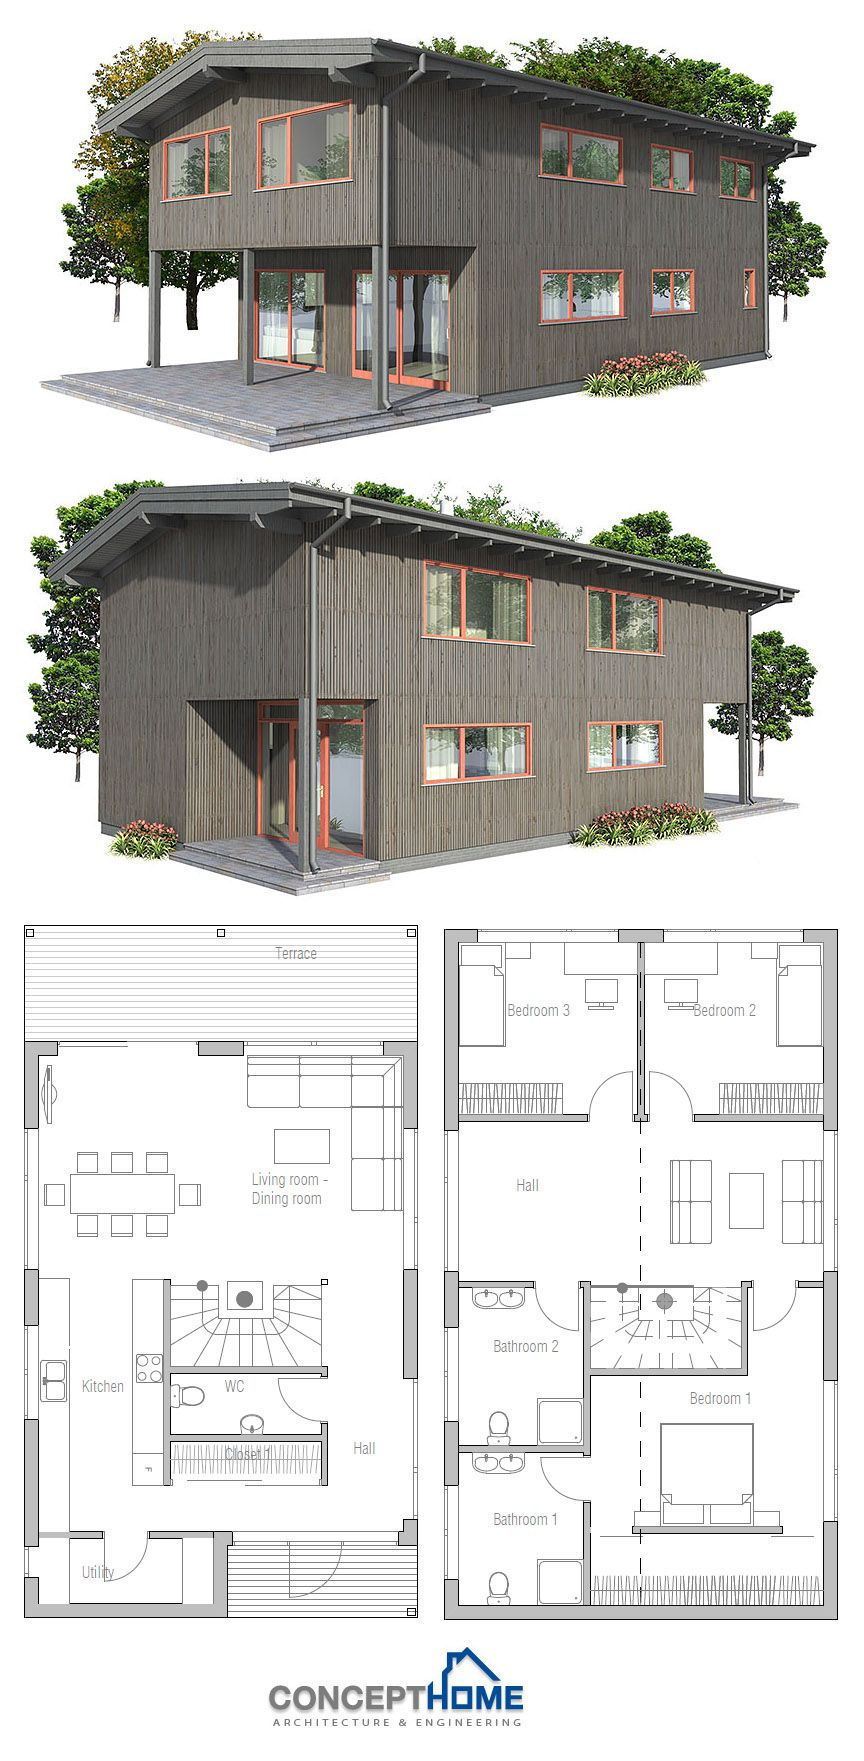 Small House Plan Affordable Home Smallhouse Smallhouseplans Homeplans House Plans Narrow House Plans Architecture House